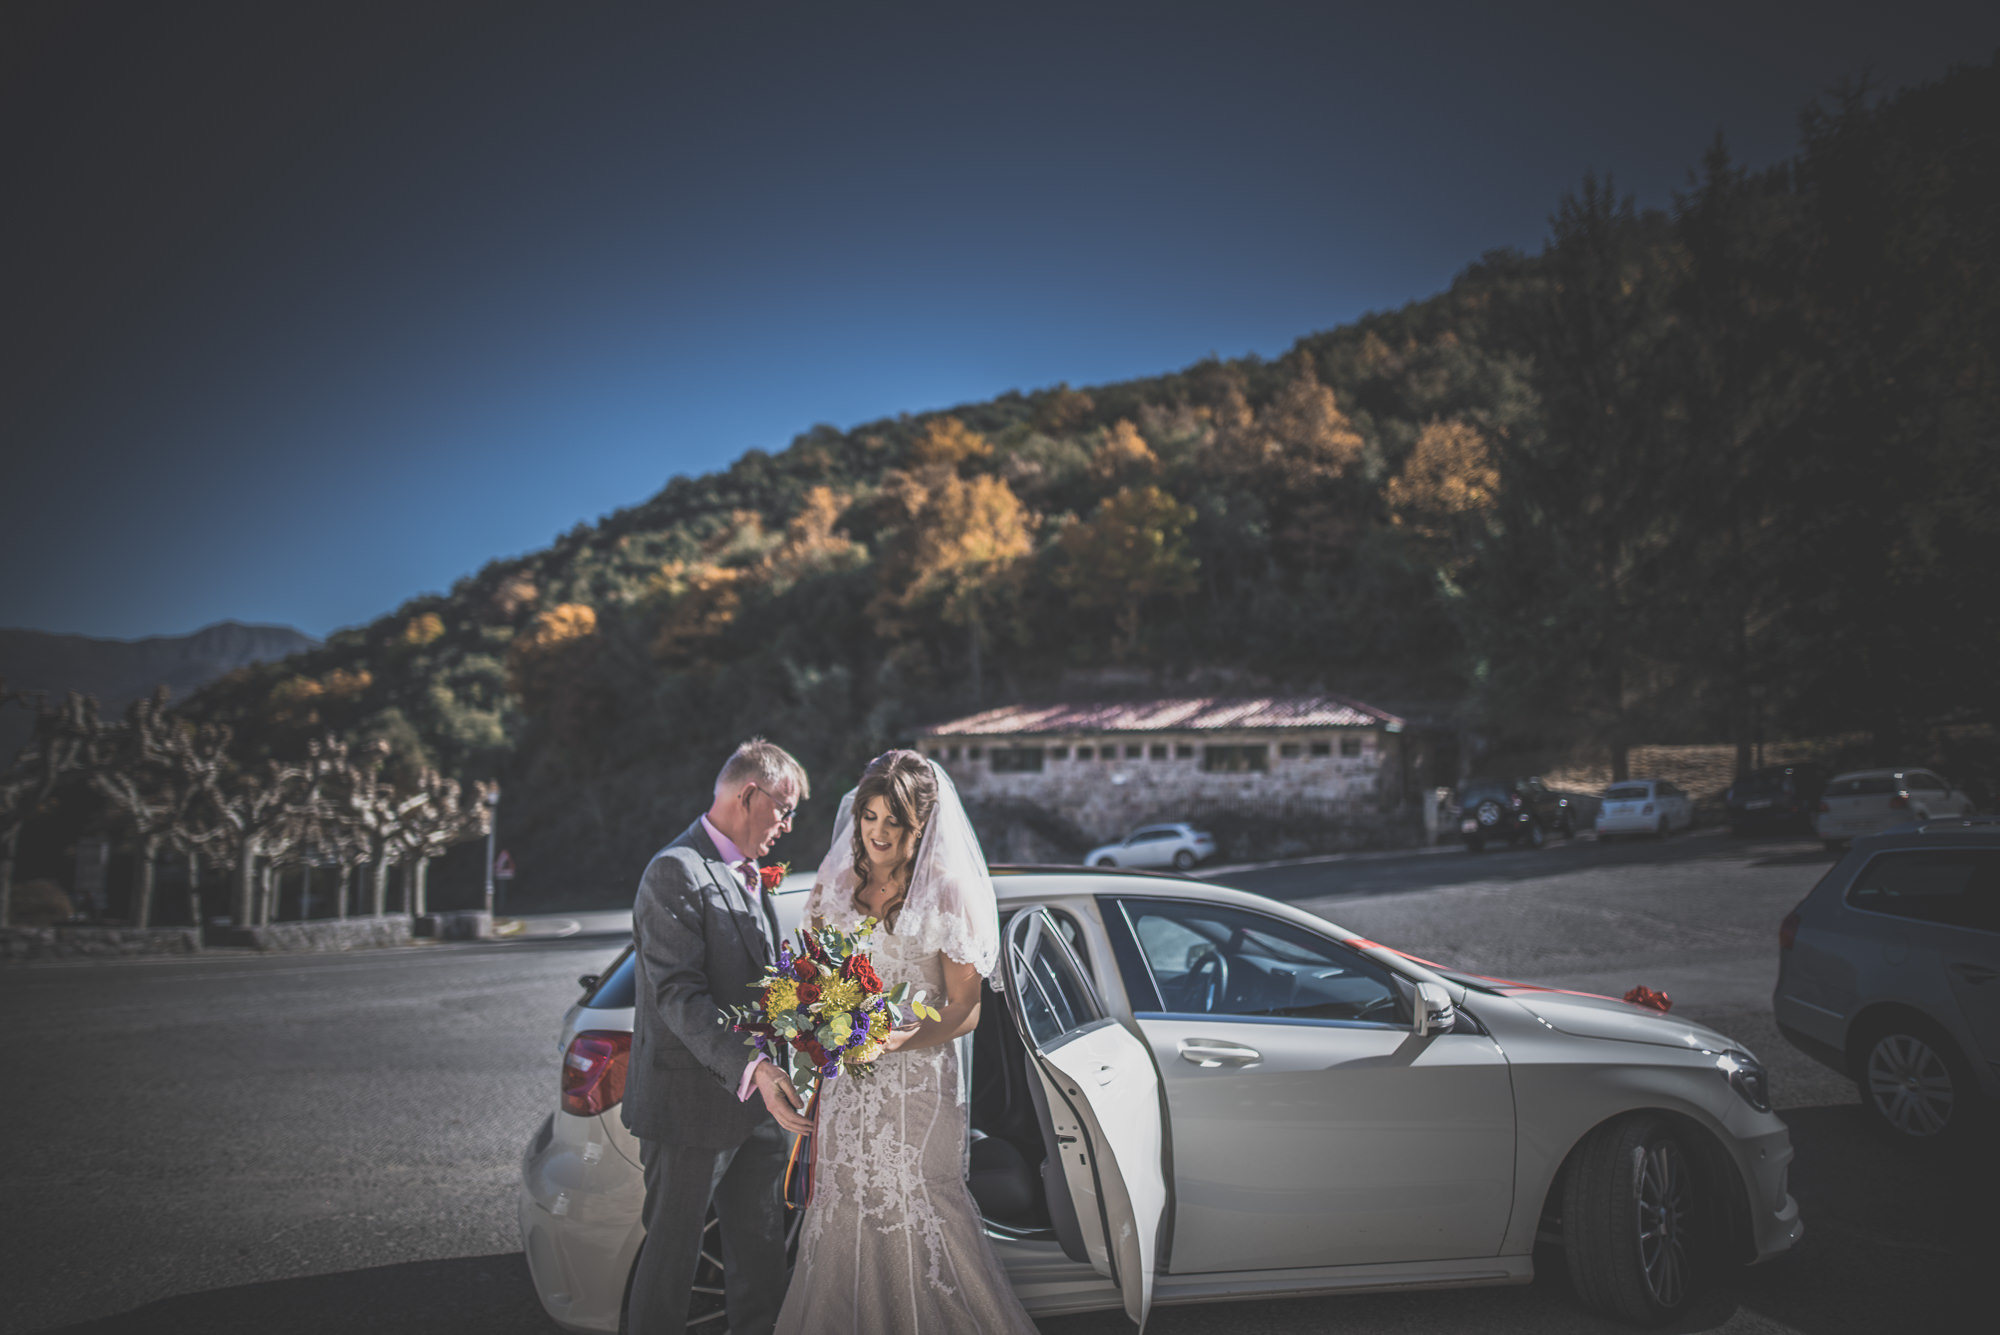 Amy-and-Andres-destination-wedding-in-Potes-Spain-Manu-Mendoza-Wedding-Photography-248.jpg